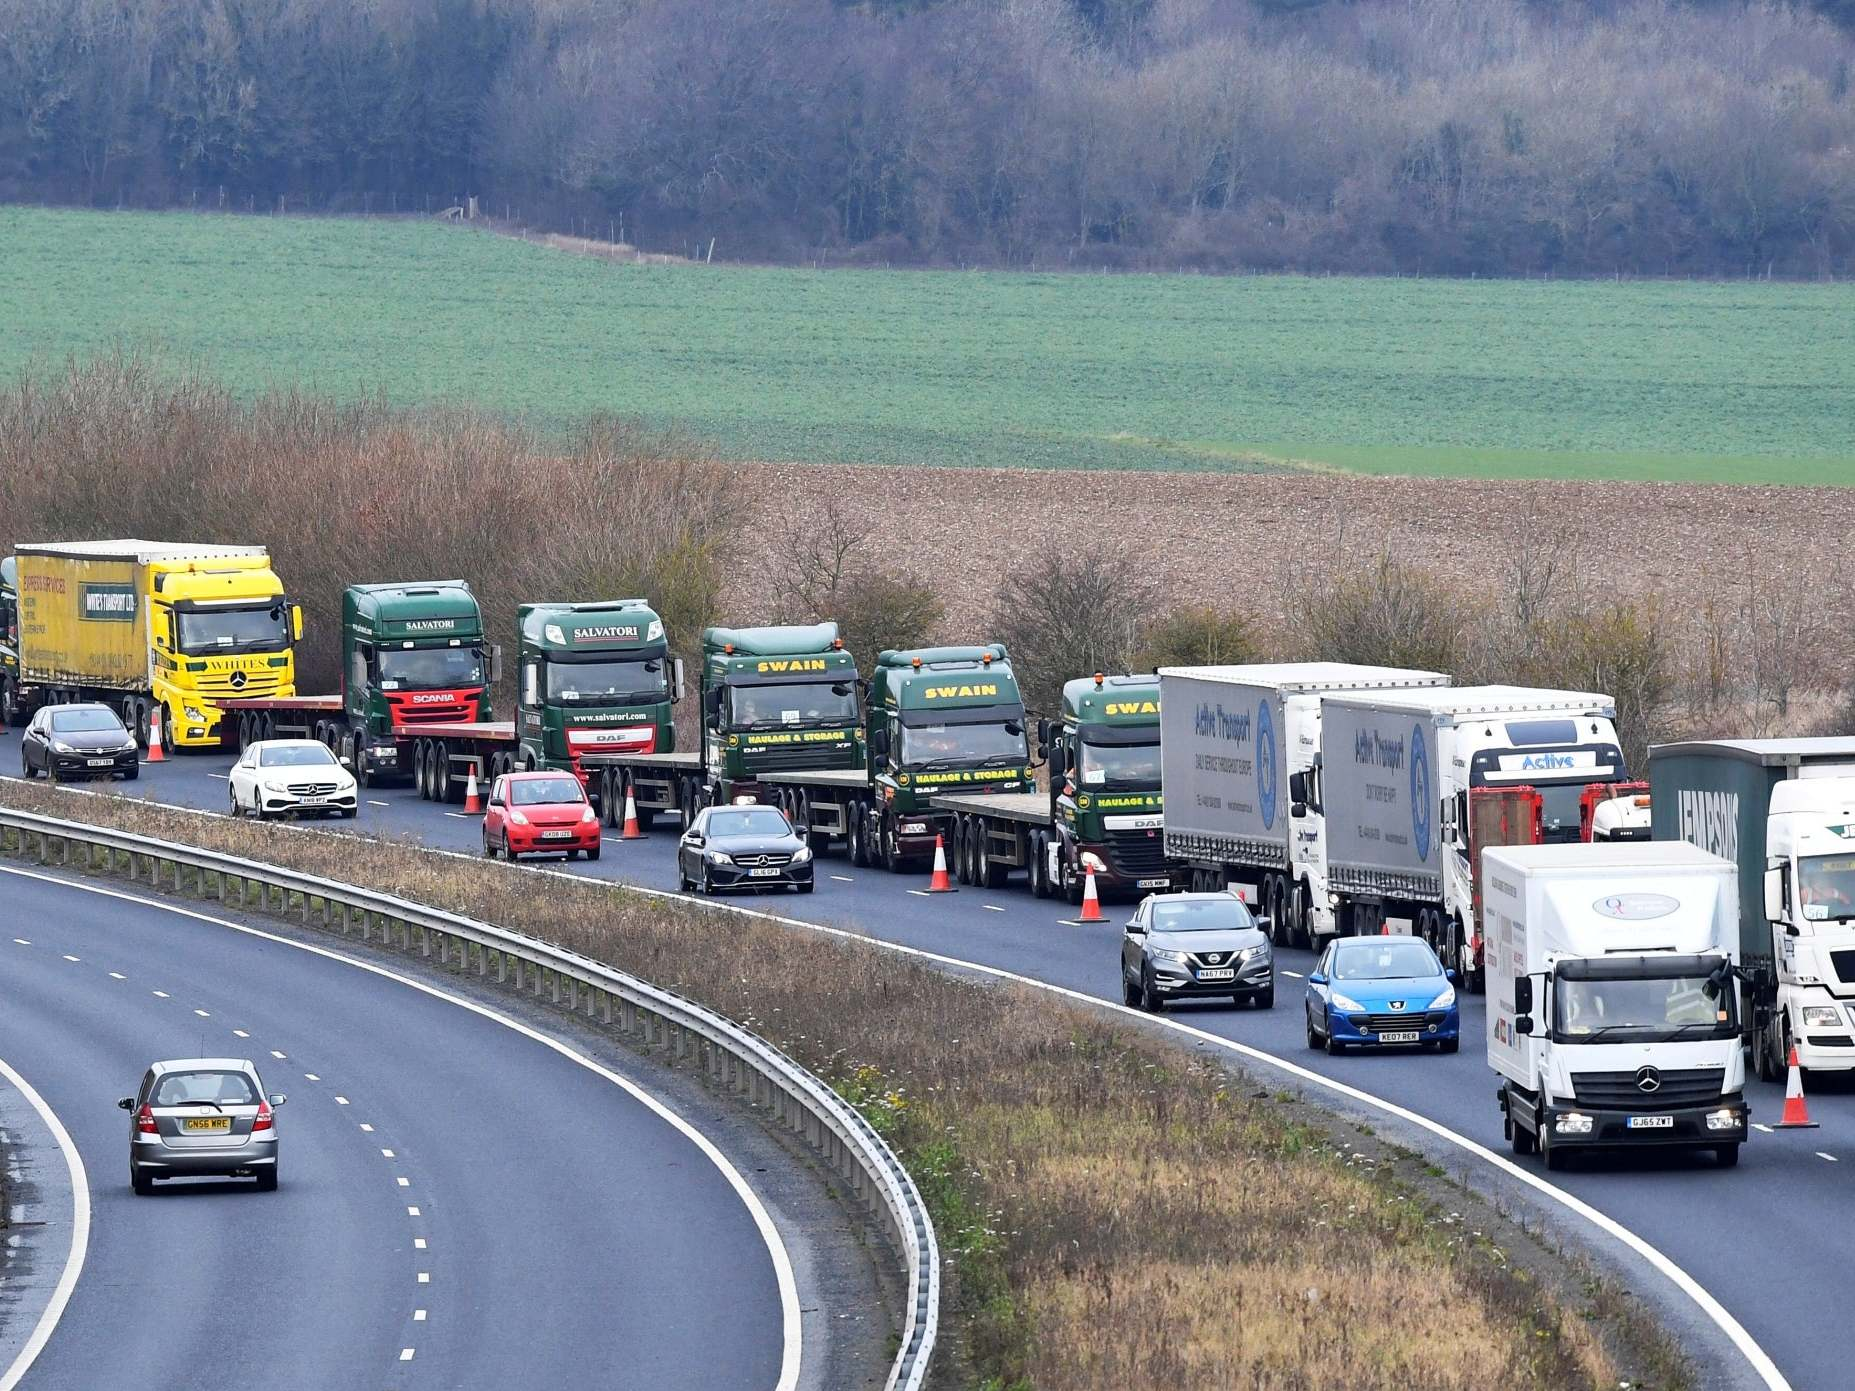 Official no-deal document confirms government planning for delays, disruption and disorder